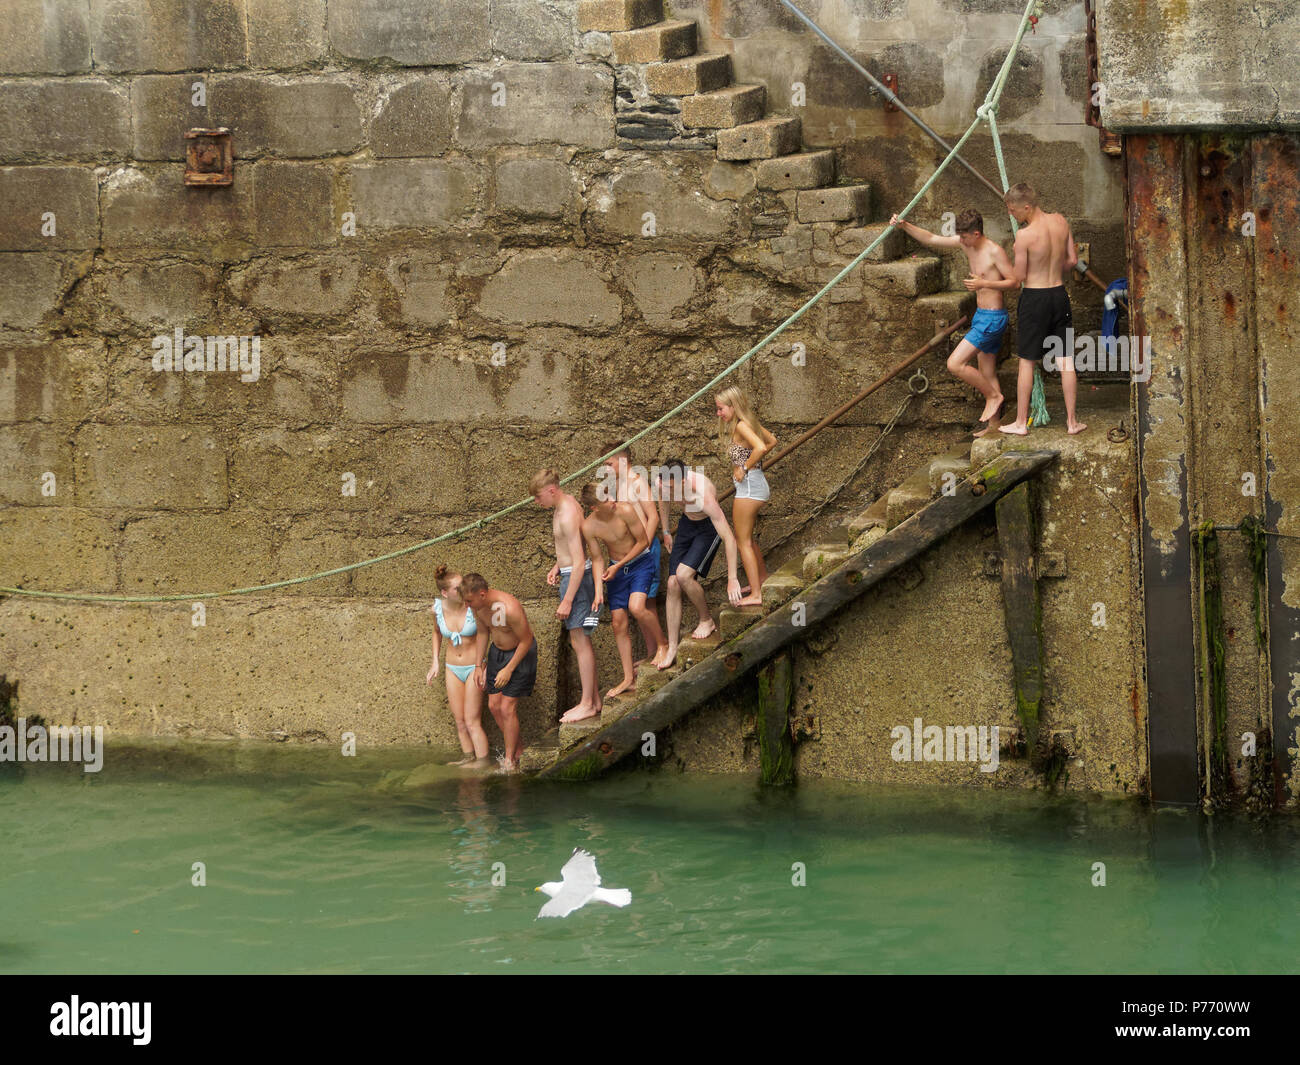 Fun canoeing in Newquay harbour. 2018  Robert Taylor/Alamy Live News.  Newquay, Cornwall, UK. - Stock Image